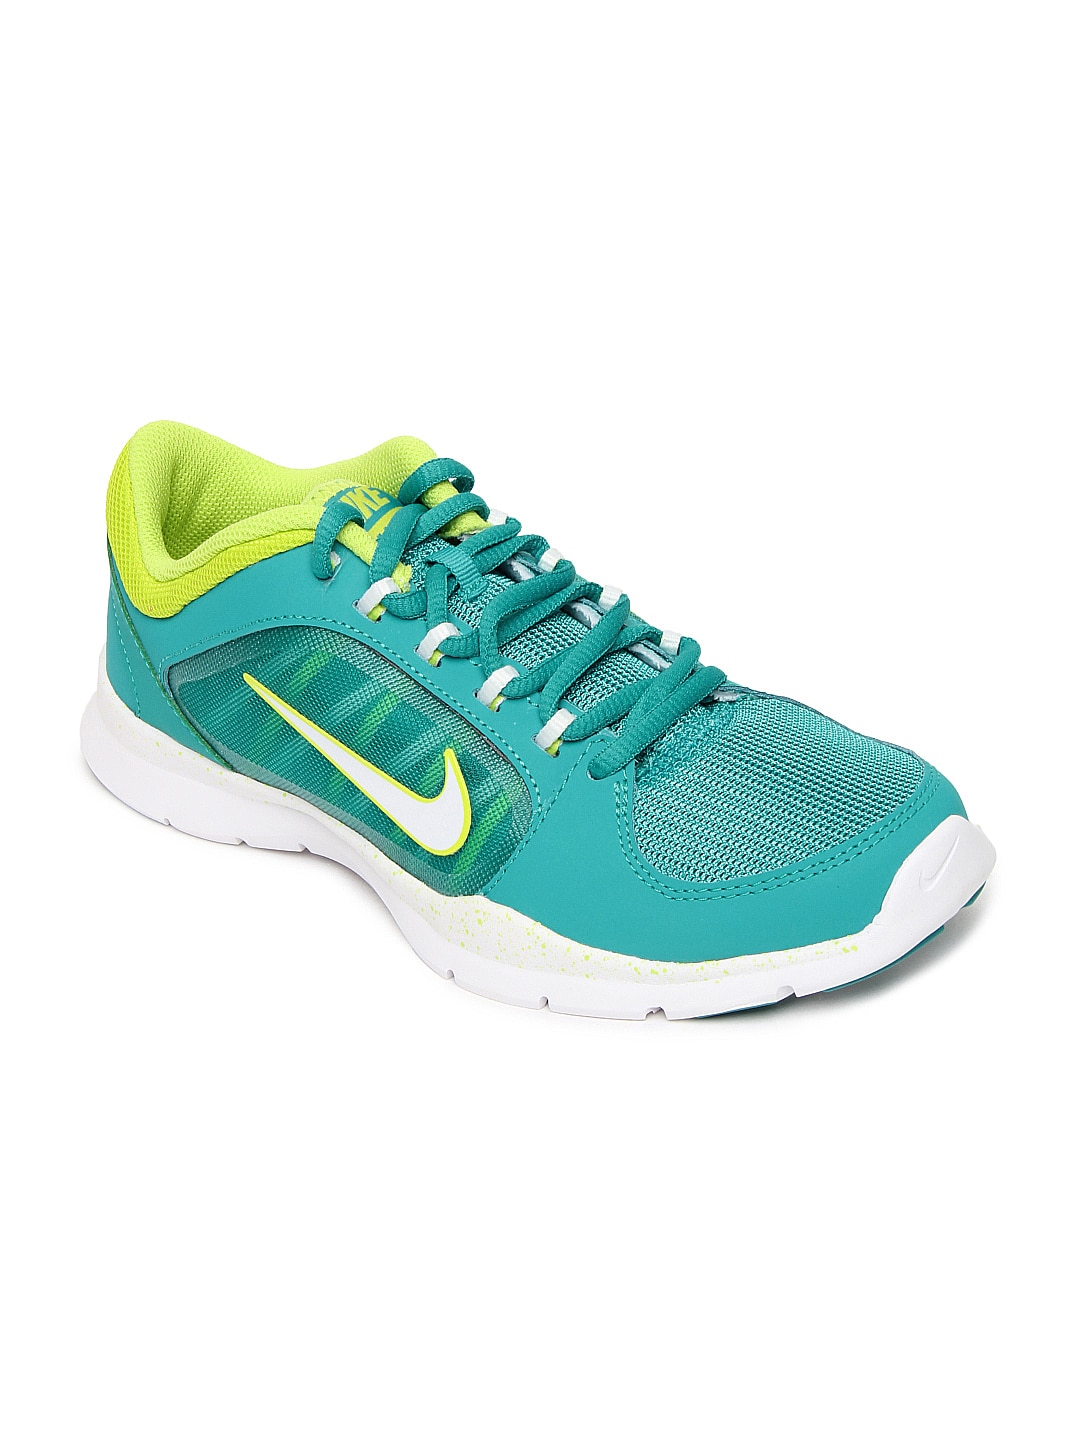 nike green flex trainer 4 sports shoes